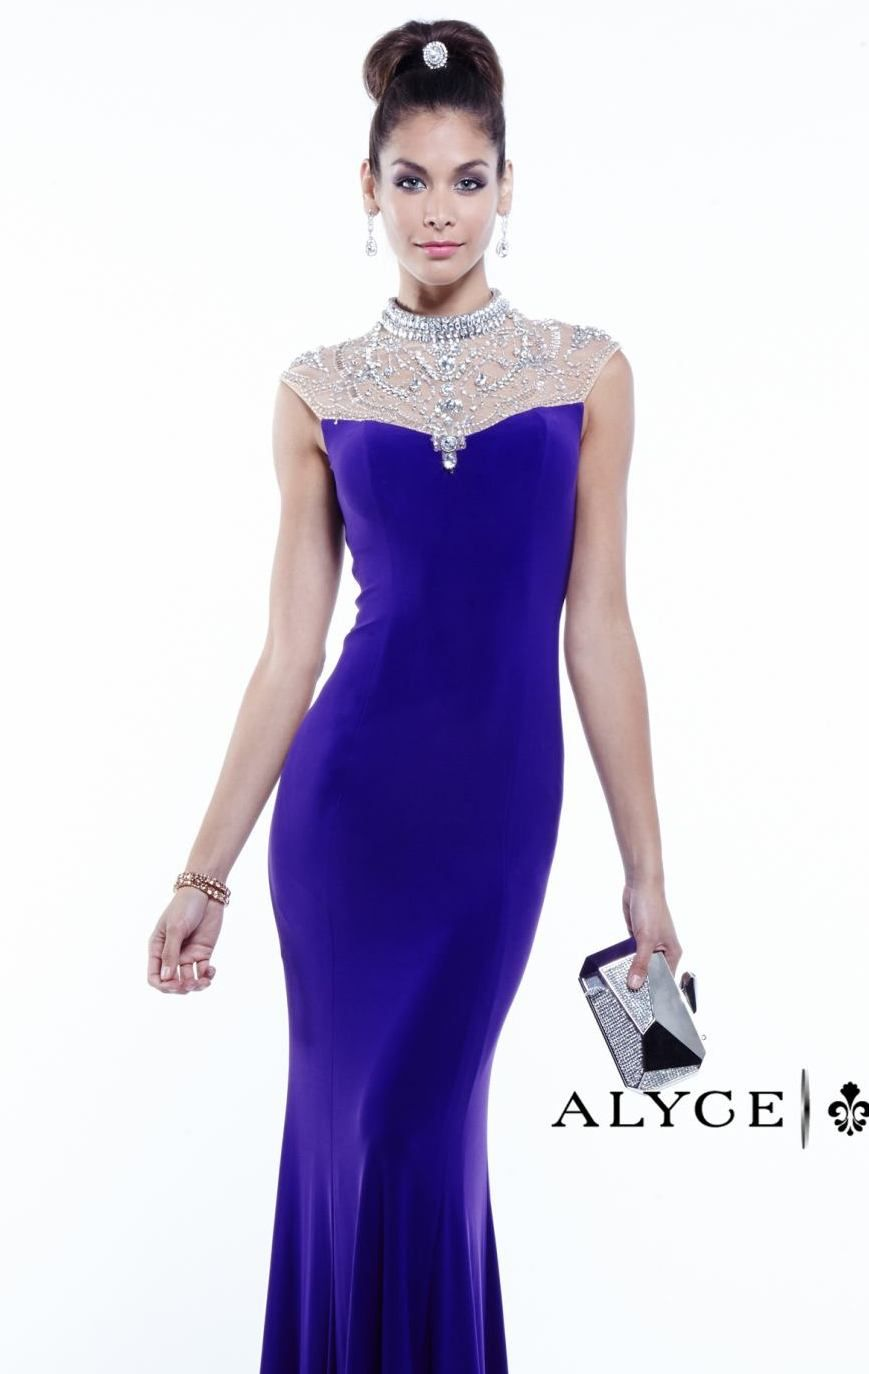 Alyce paris bodycon prom dress bodycon prom dresses